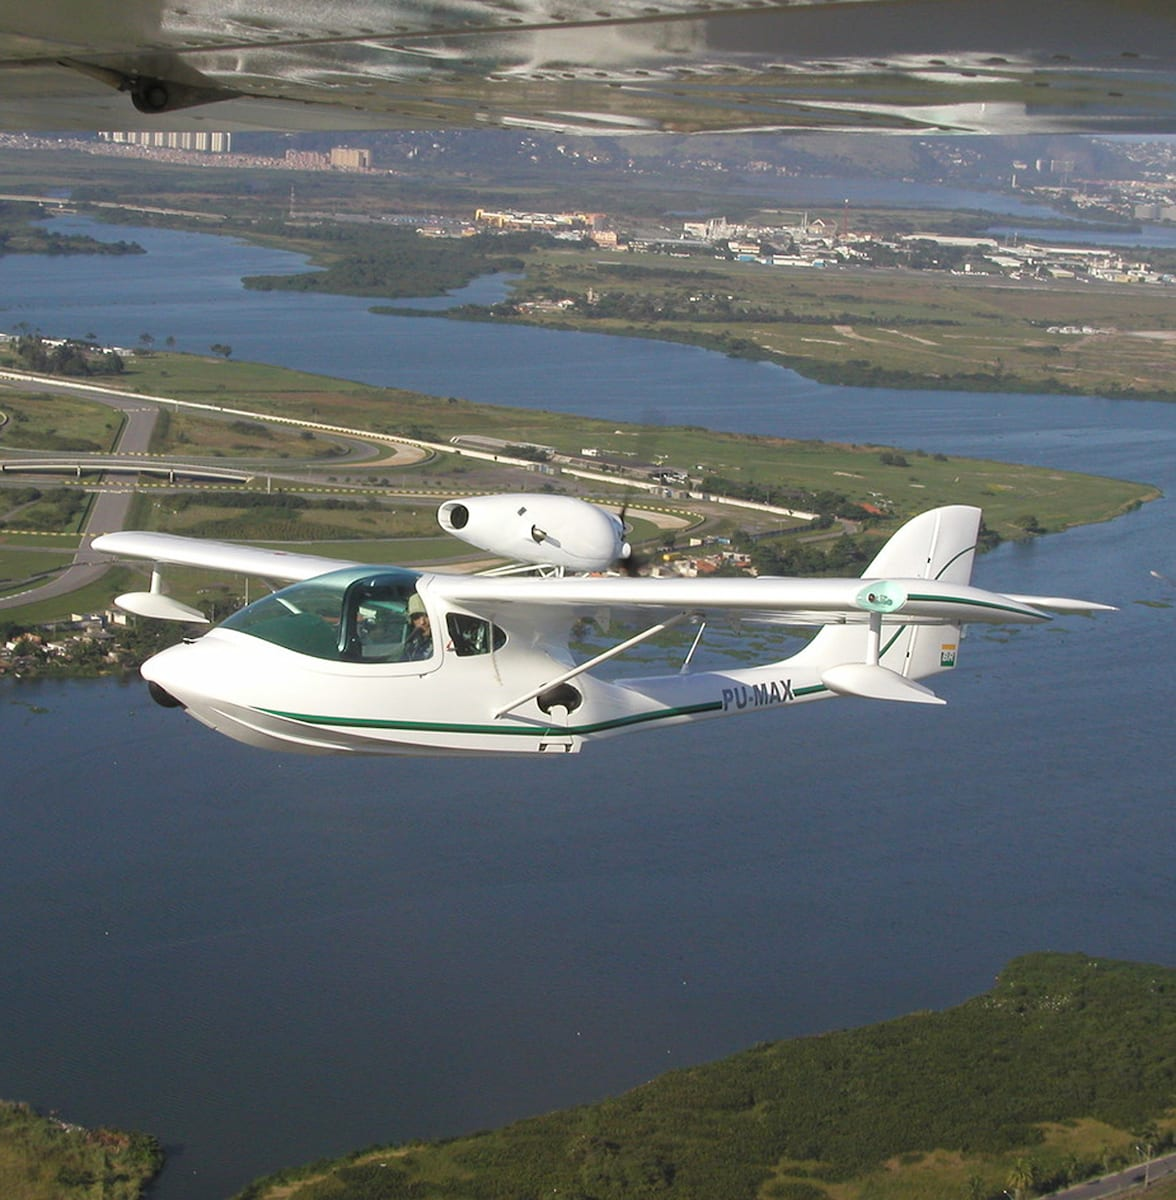 Light-Sport Aircraft seaplane maker Seamax Aircraft has delivered the first Seamax M-22 aircraft designed with Instrument Flying Rules (IFR) capabilit